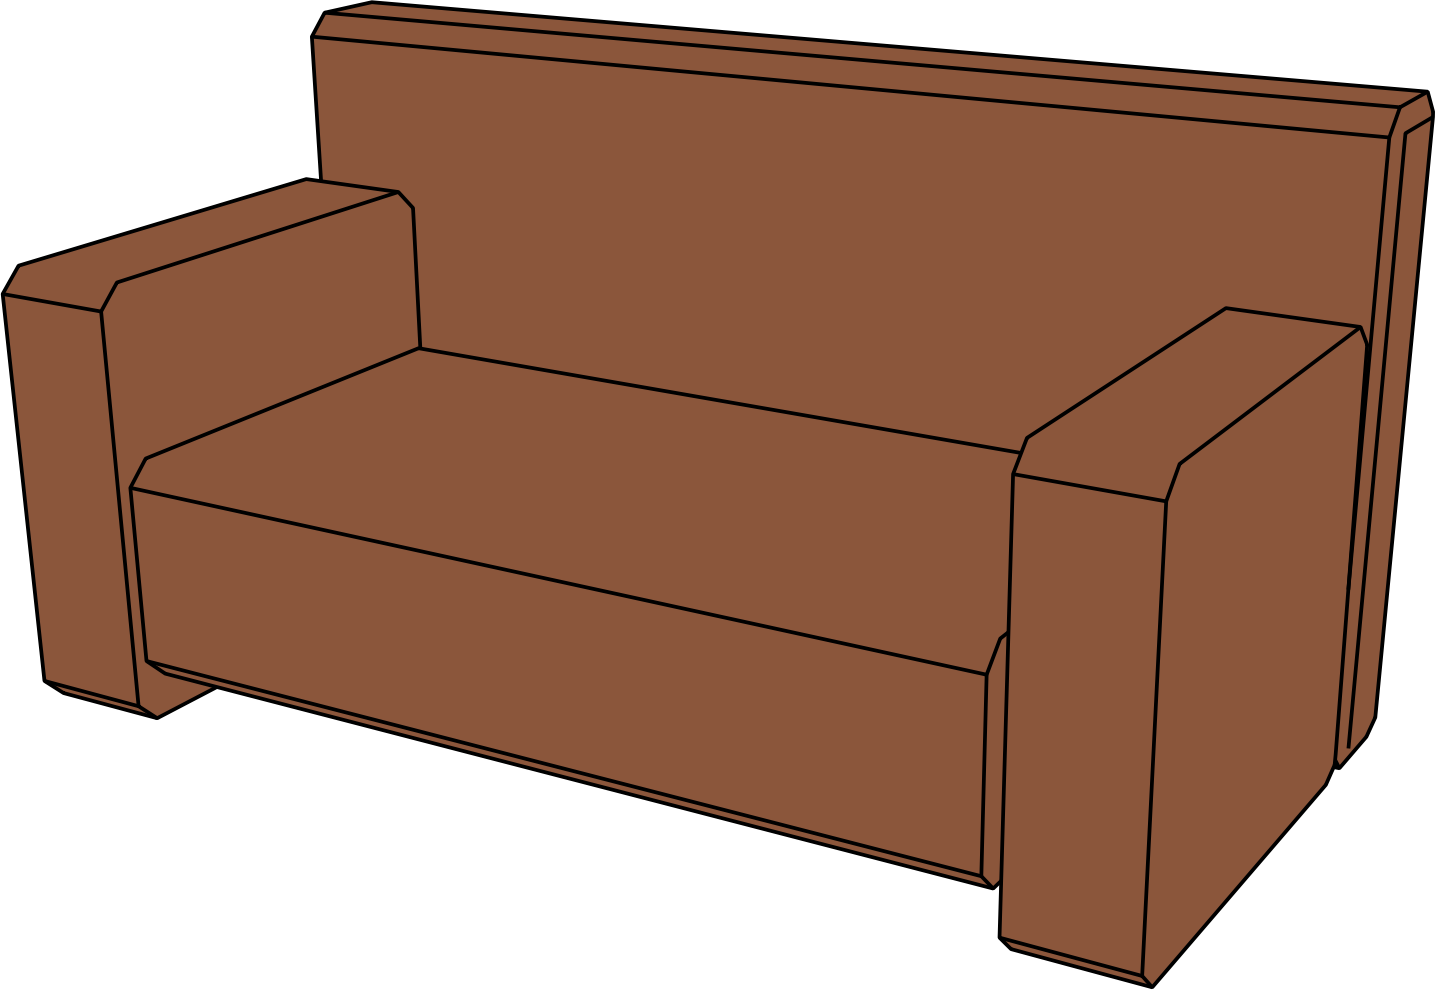 Sofa [perspective] by photofree.ga